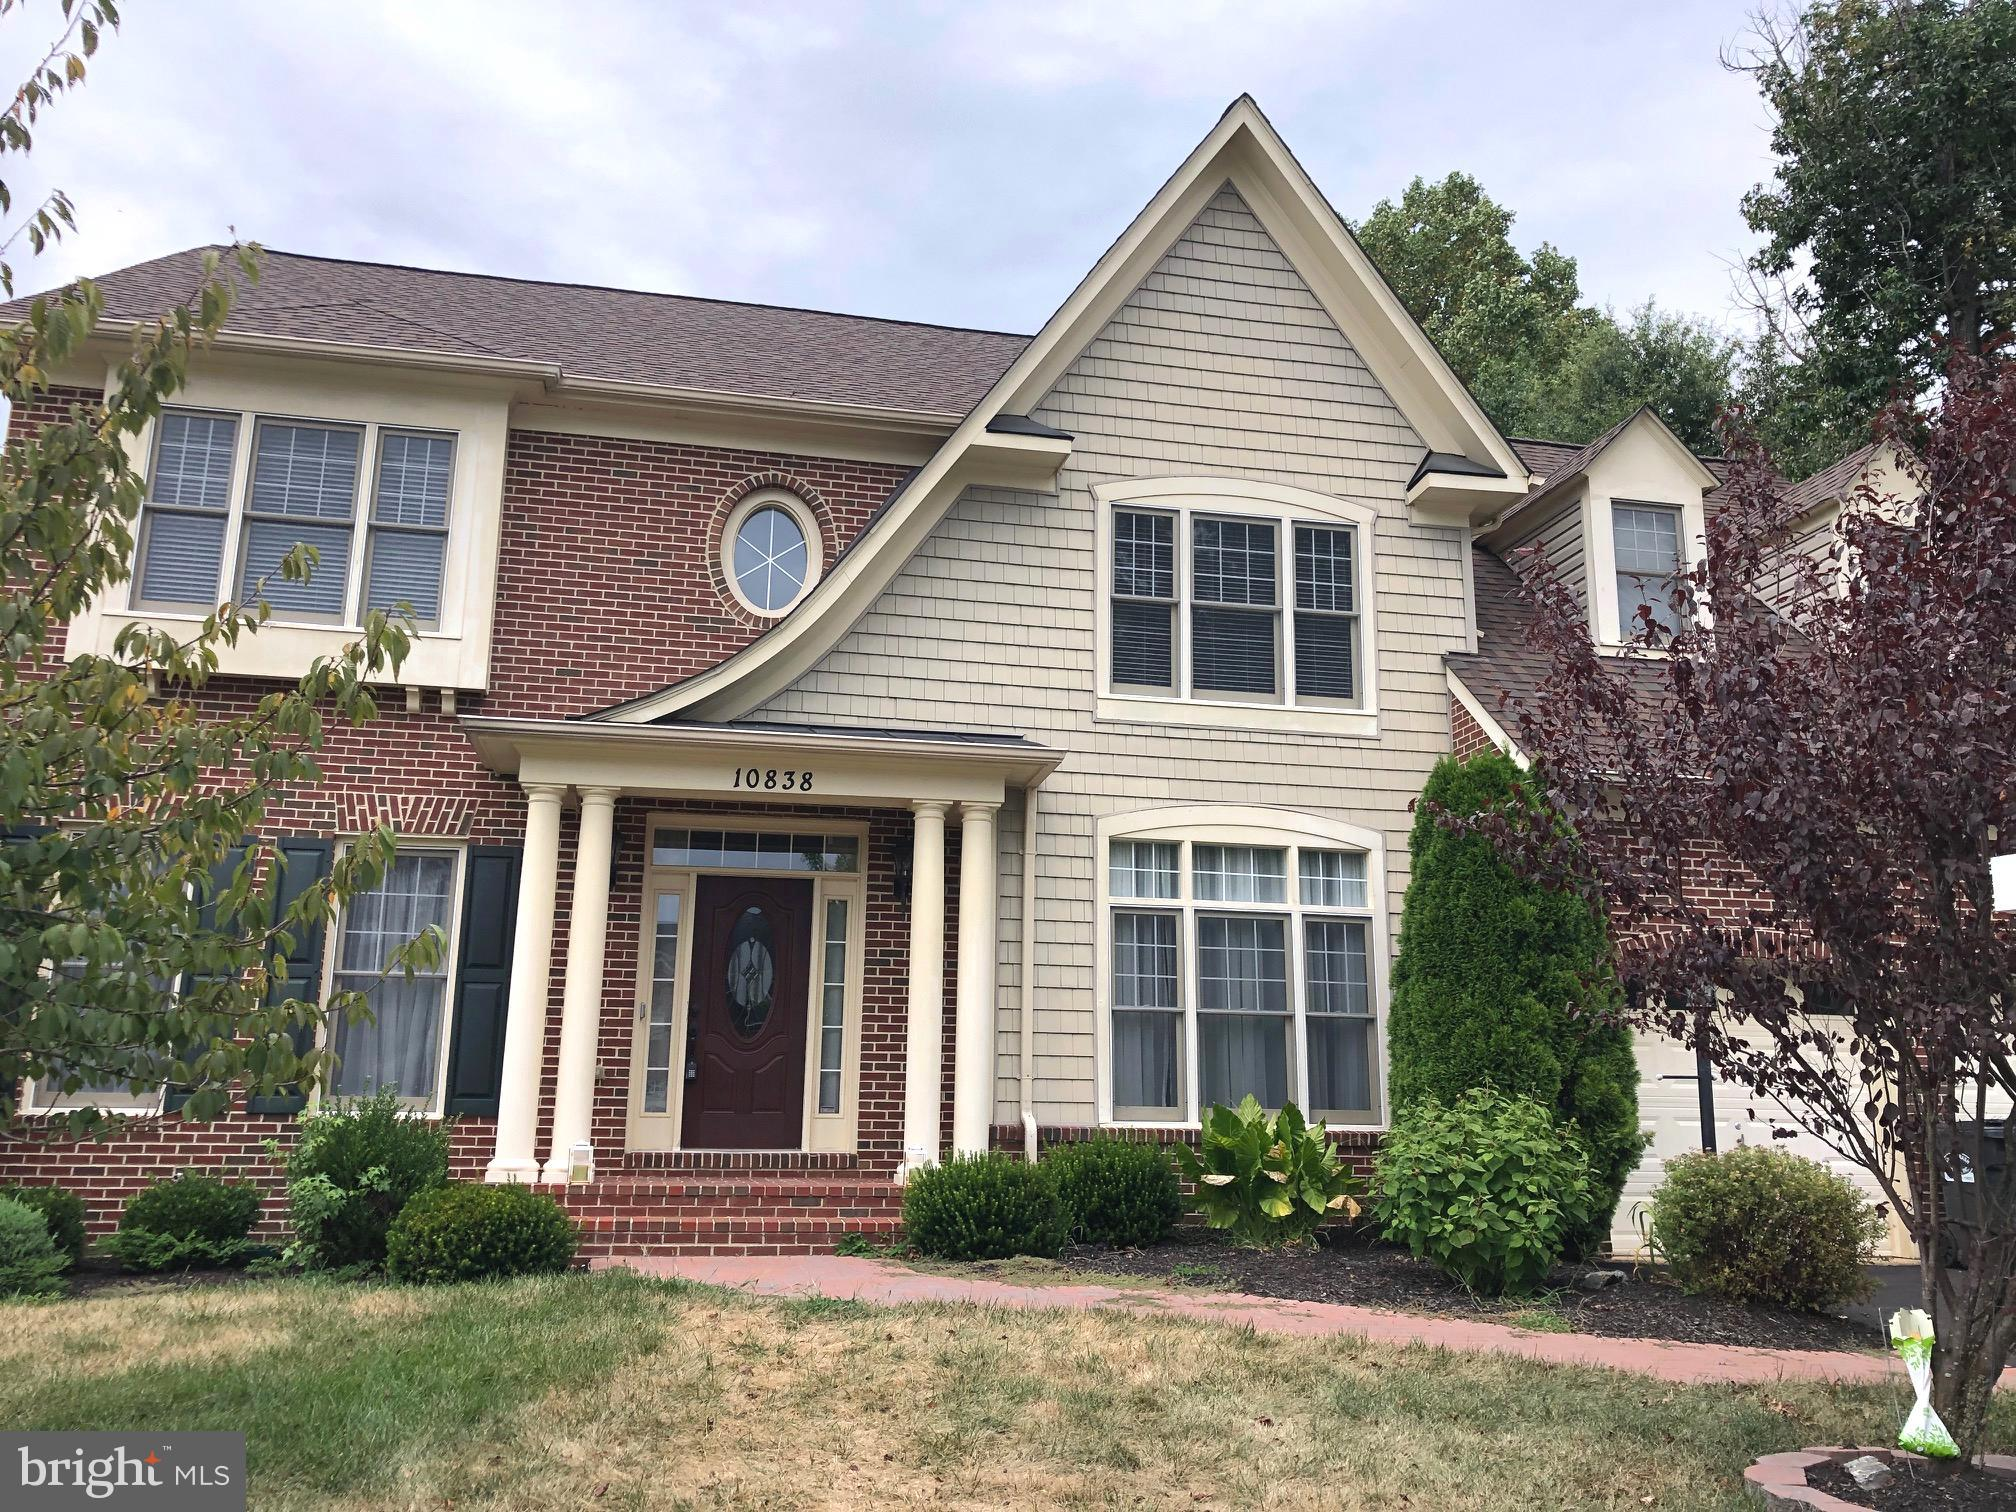 10838 CONSTITUTION DRIVE, WALDORF, MD 20603